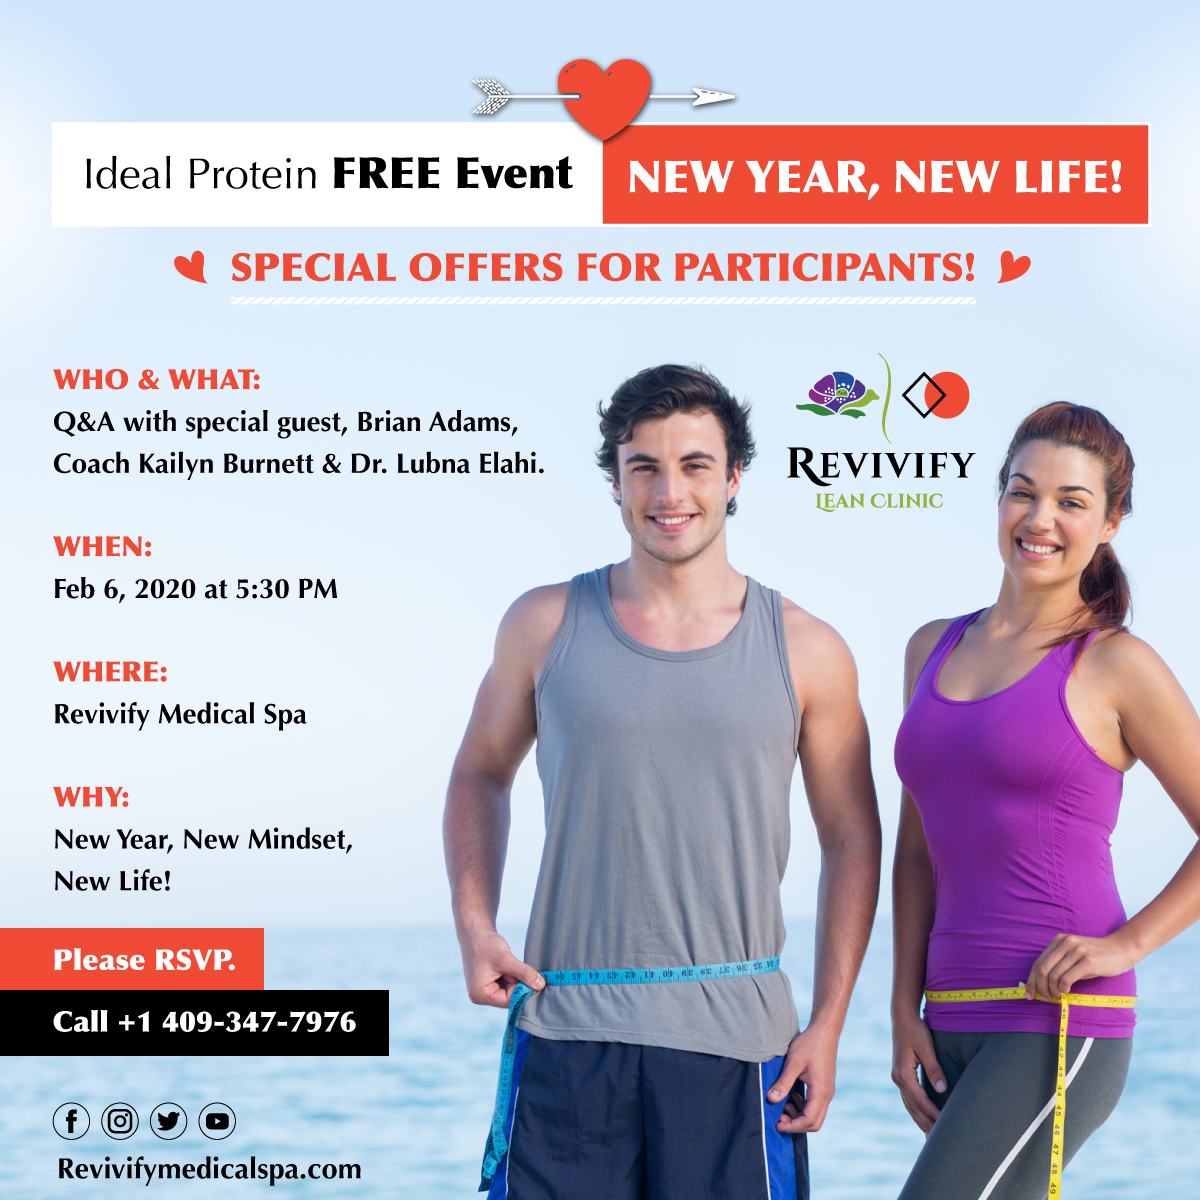 New-Year-New-Life-deal-Protein-Free-Event